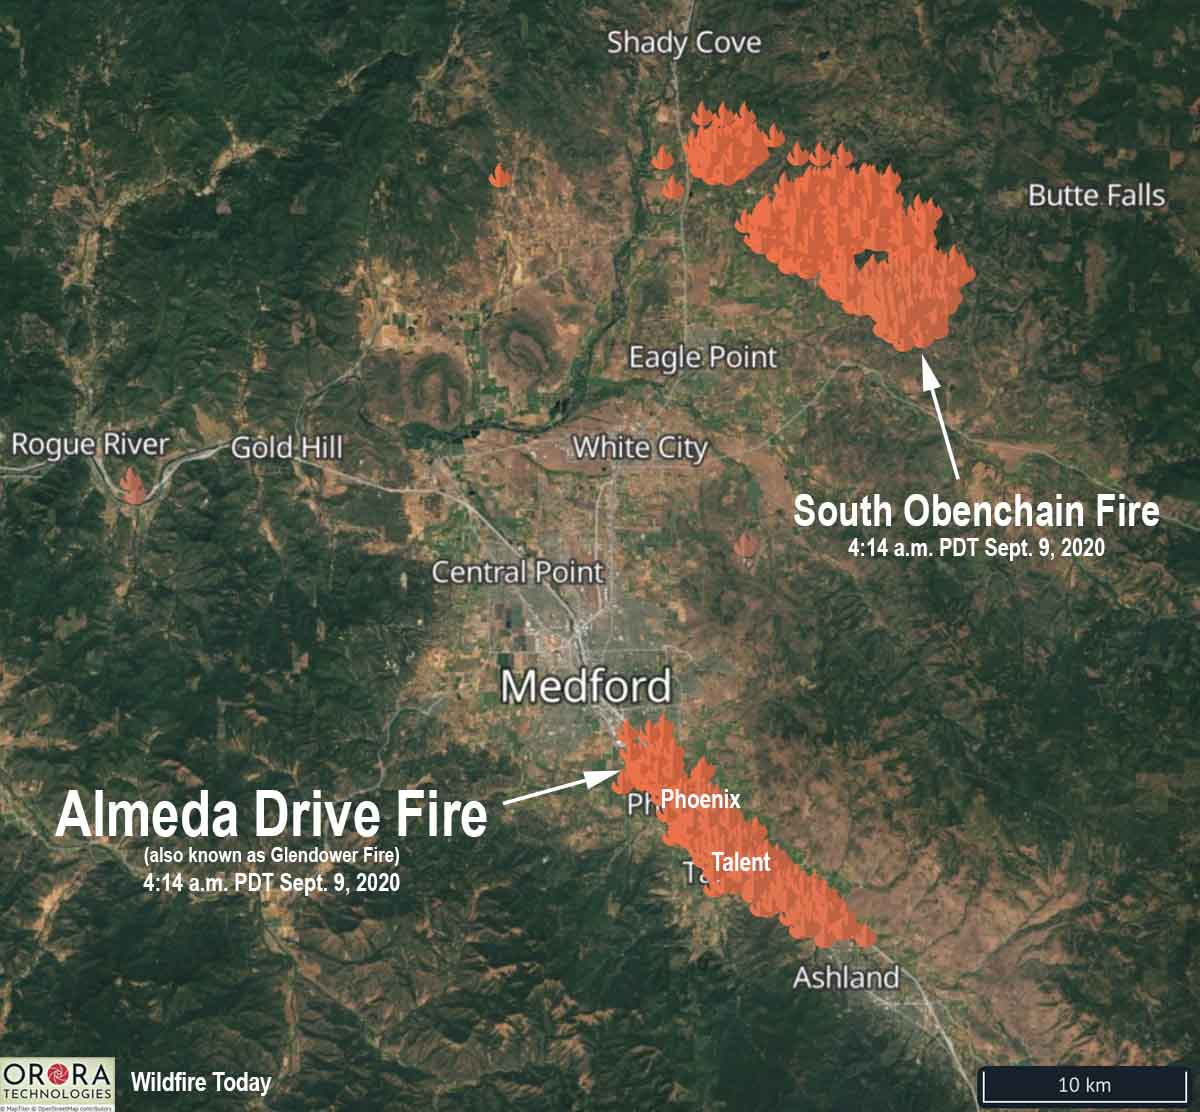 Map Almeda Drive and South Obenchain Fires